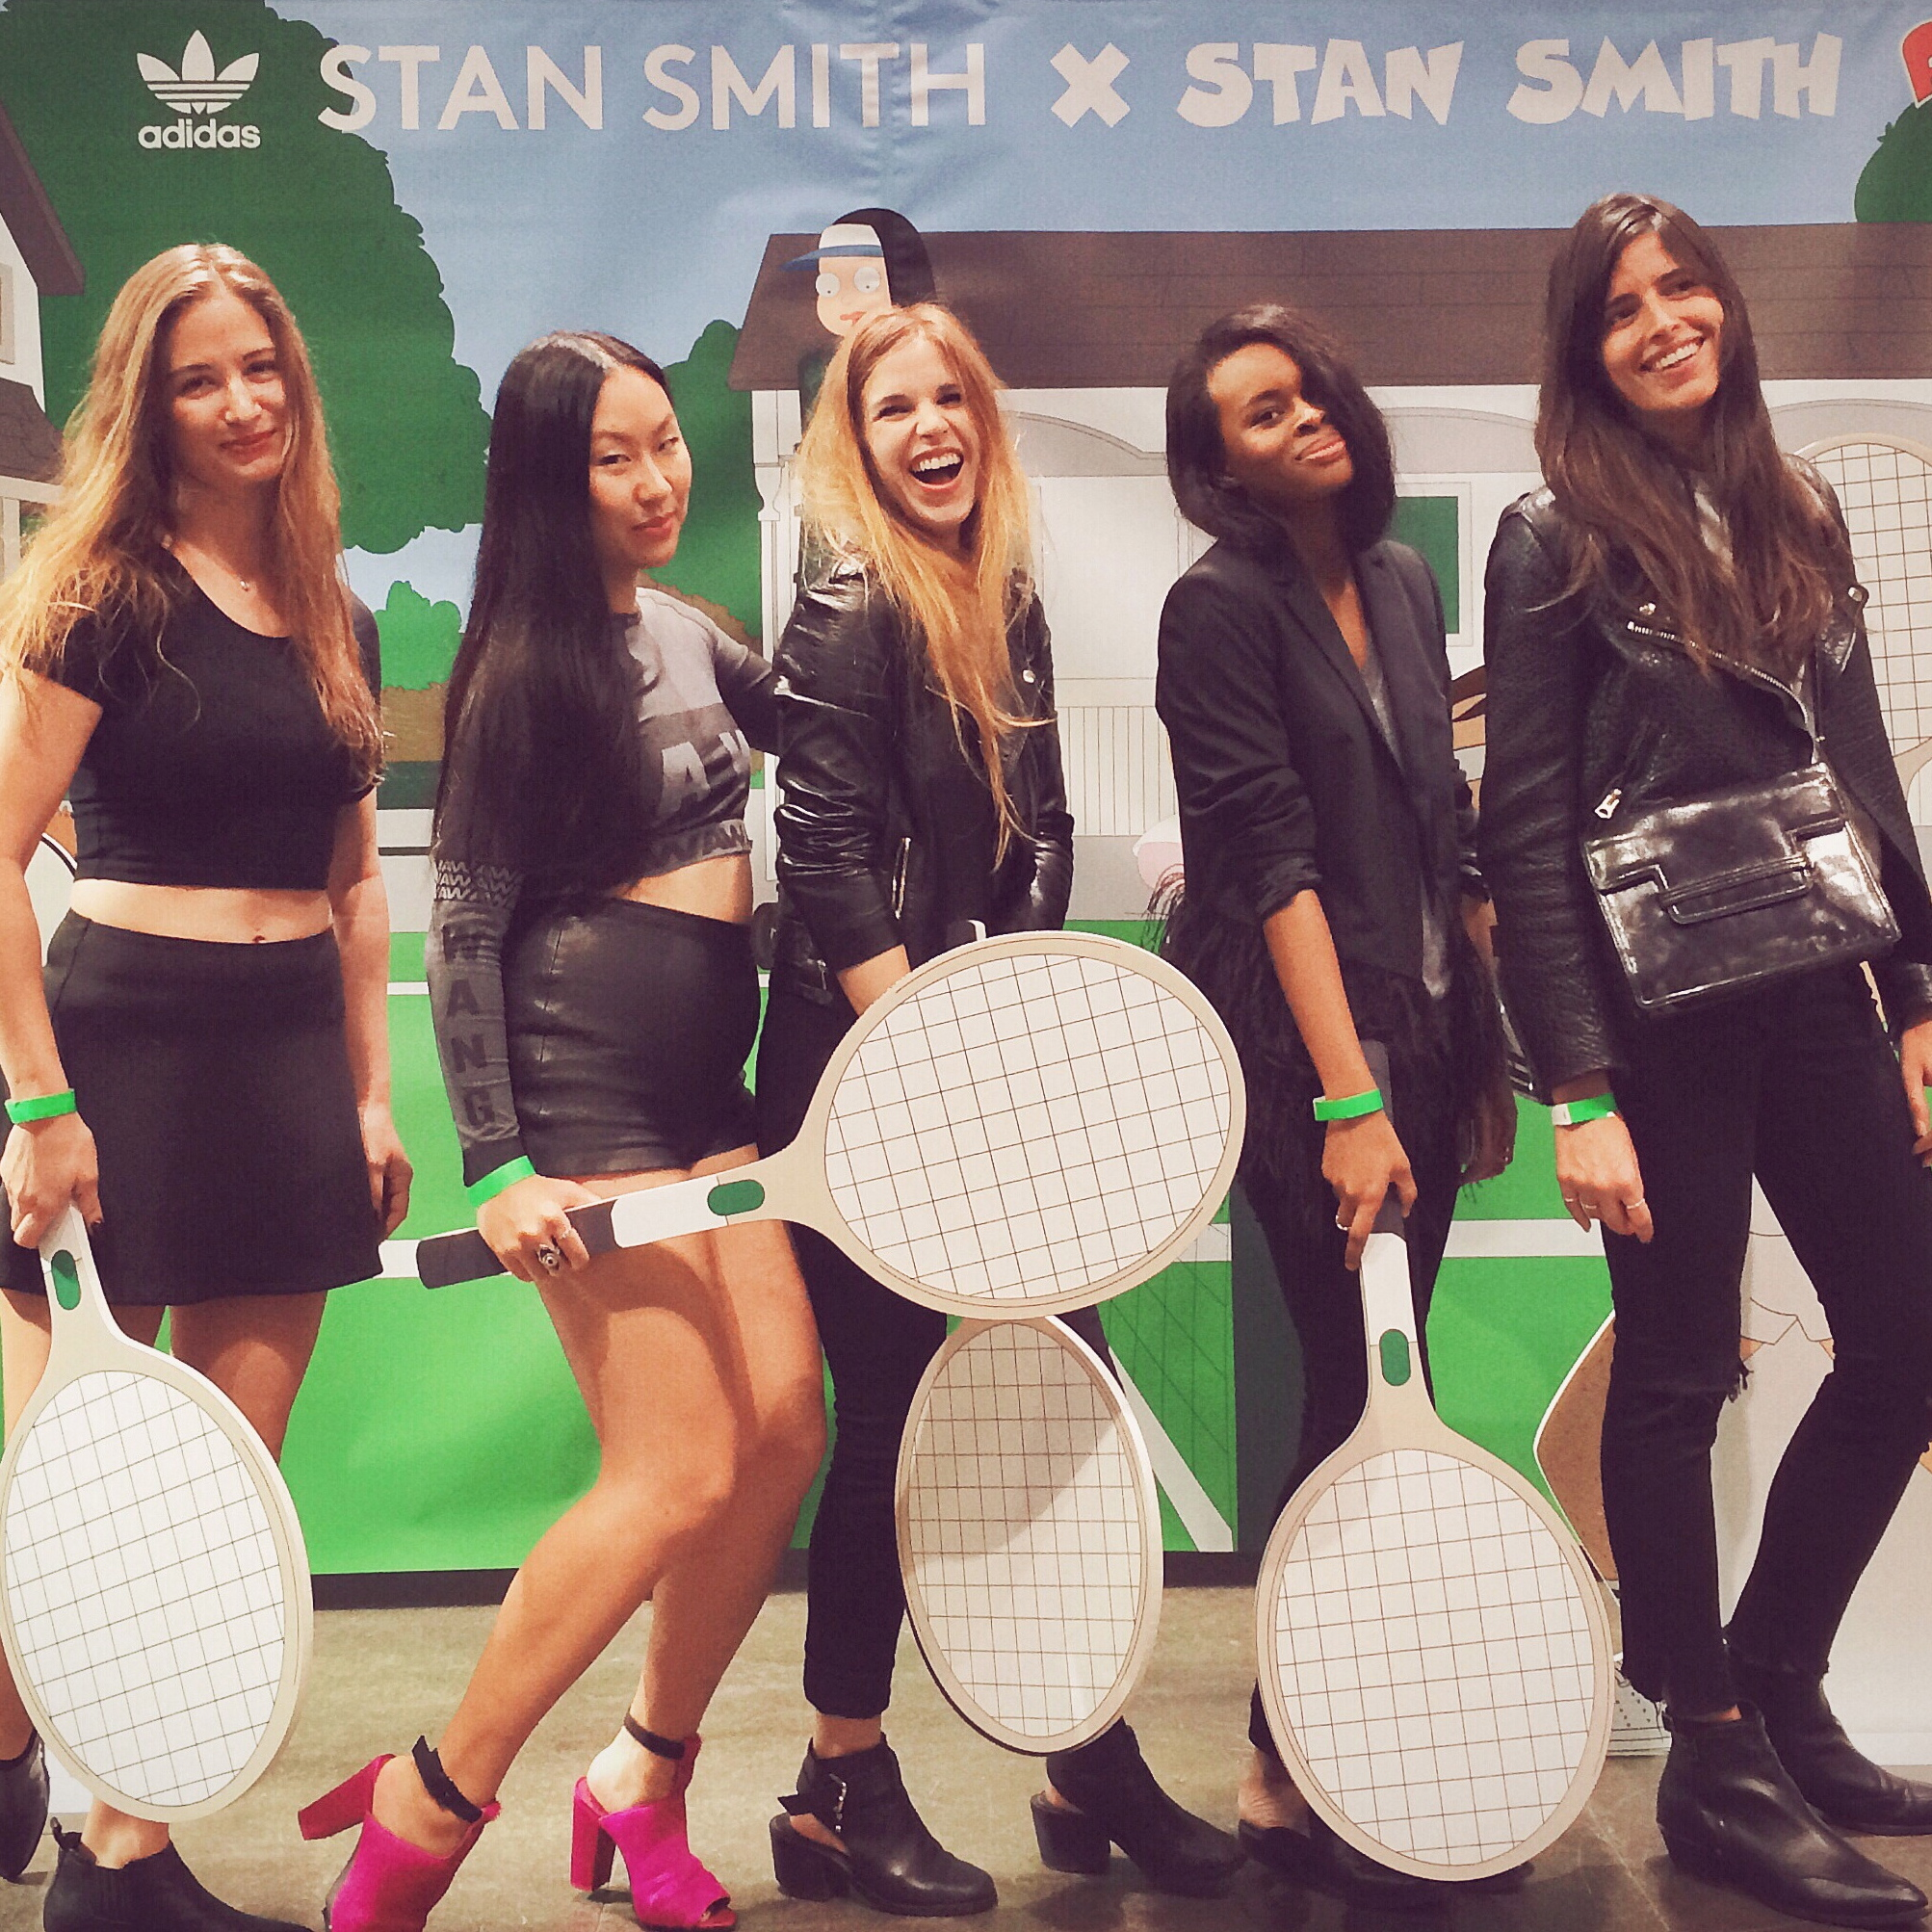 Lena Vanderford, Marie McNally, Dione Davis, Chelsea Claridge, Adidas Stan Smith Event, New York 2014